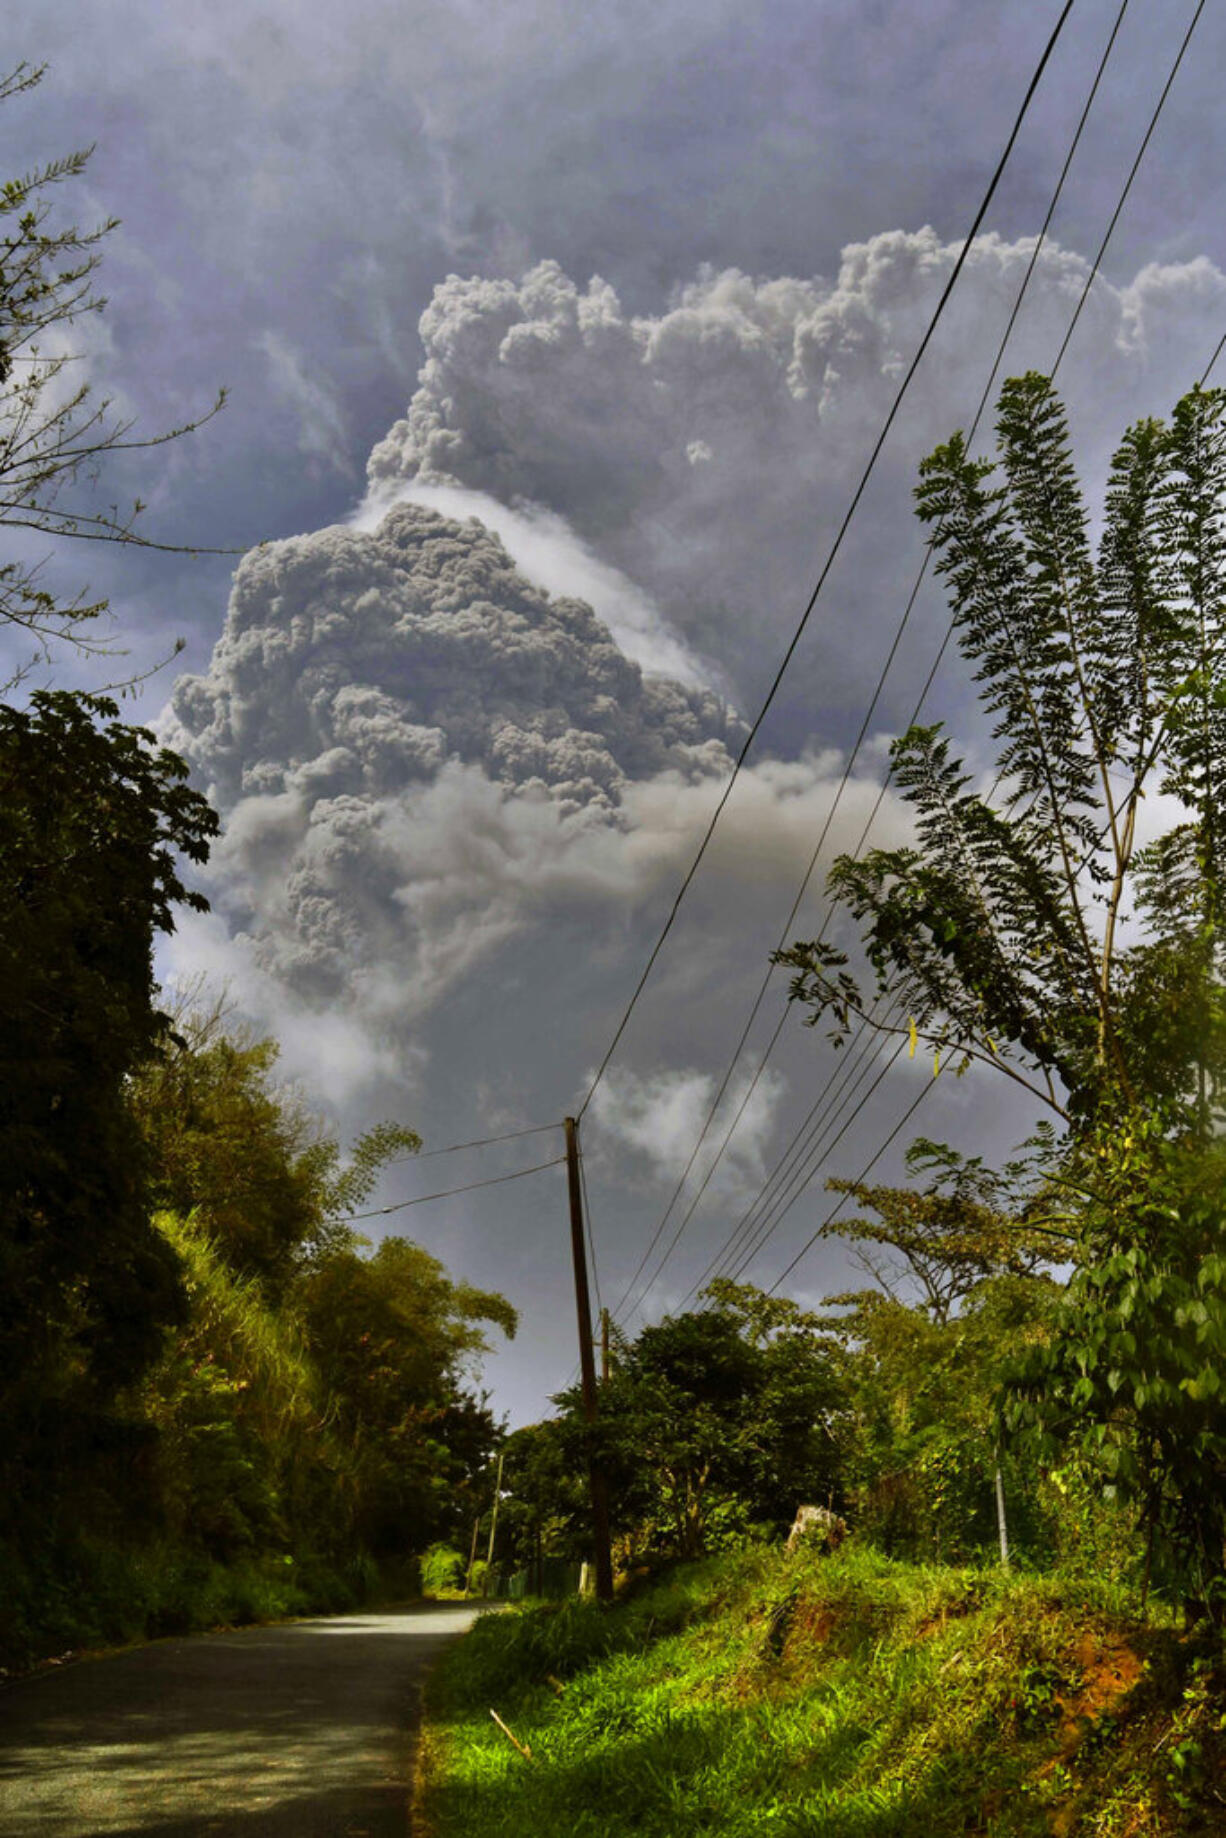 Plumes of ash rise from the La Soufriere volcano as it erupts on the eastern Caribbean island of St. Vincent, as seen from Chateaubelair, Friday, April 9, 2021.